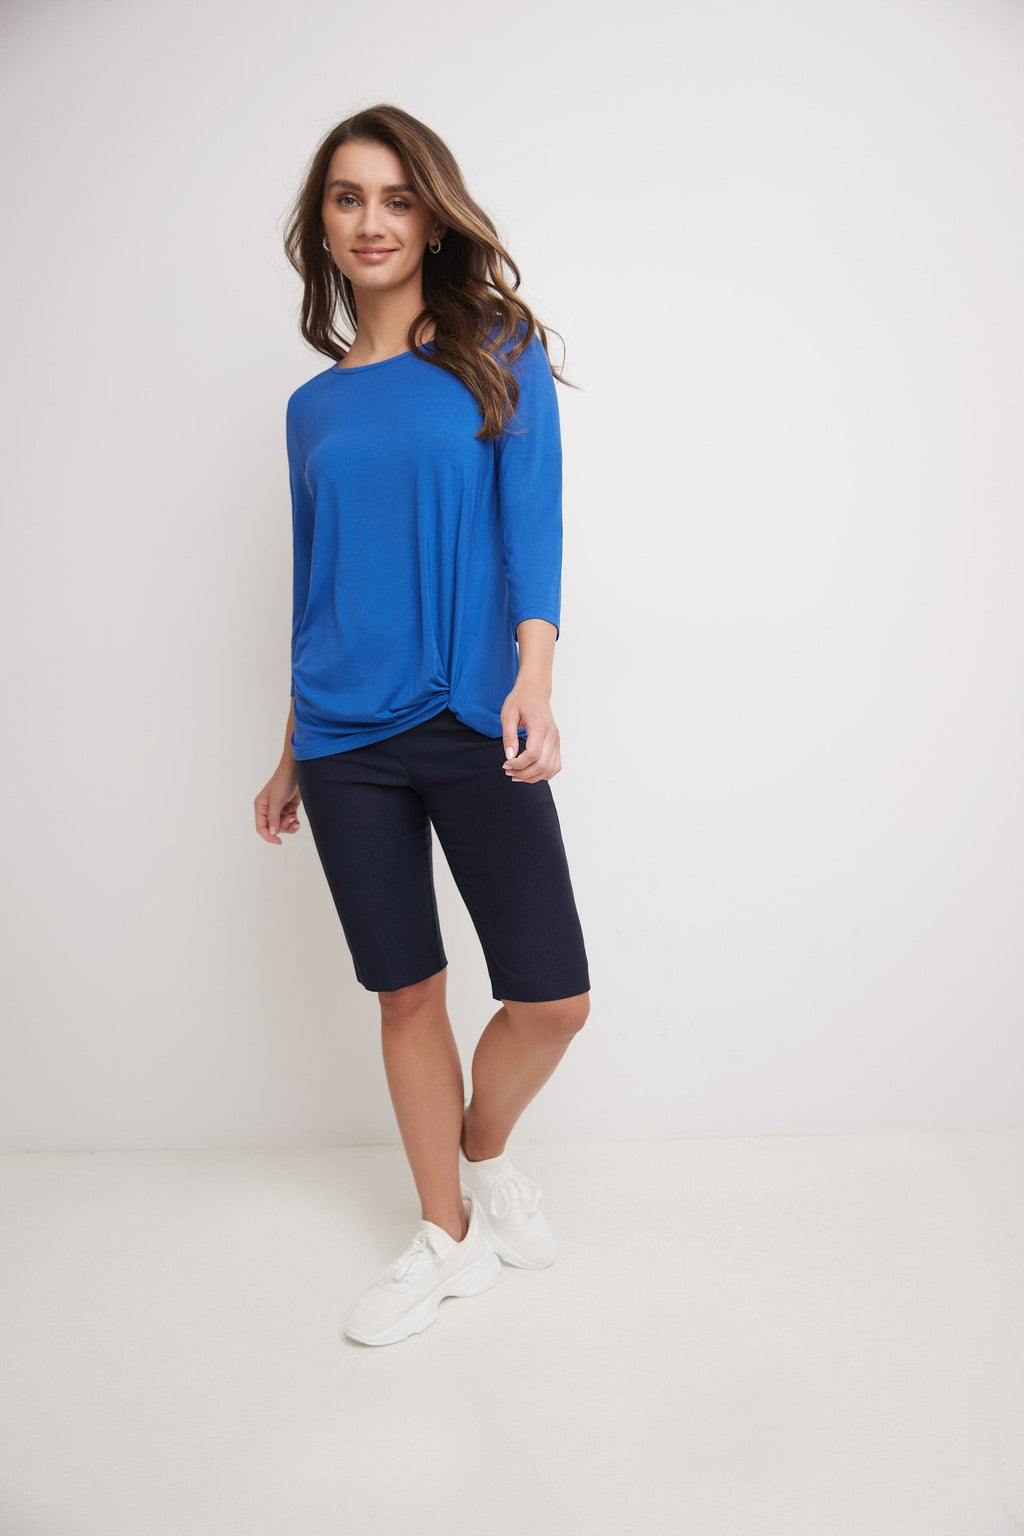 Super Soft Knit Top with Knot Detail and 3/4 Sleeves